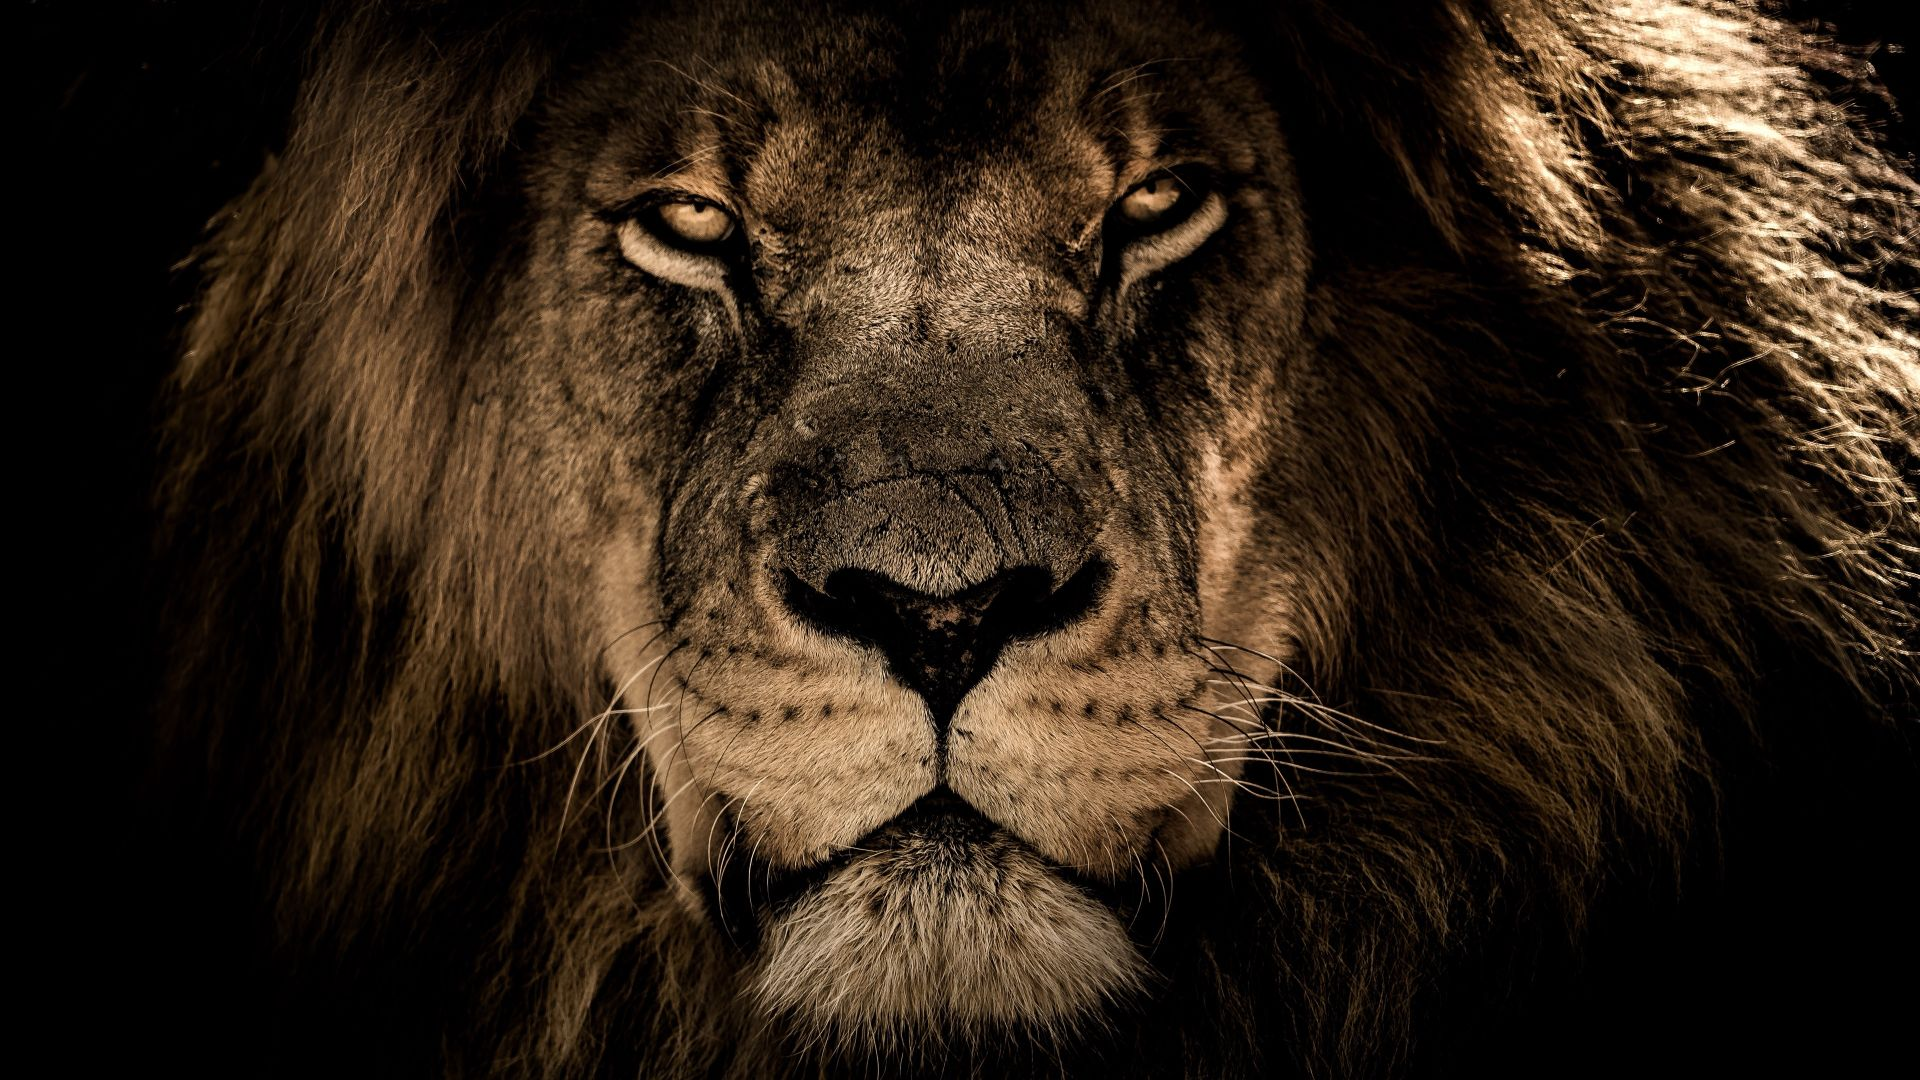 Lion Animal wallpaper and themes